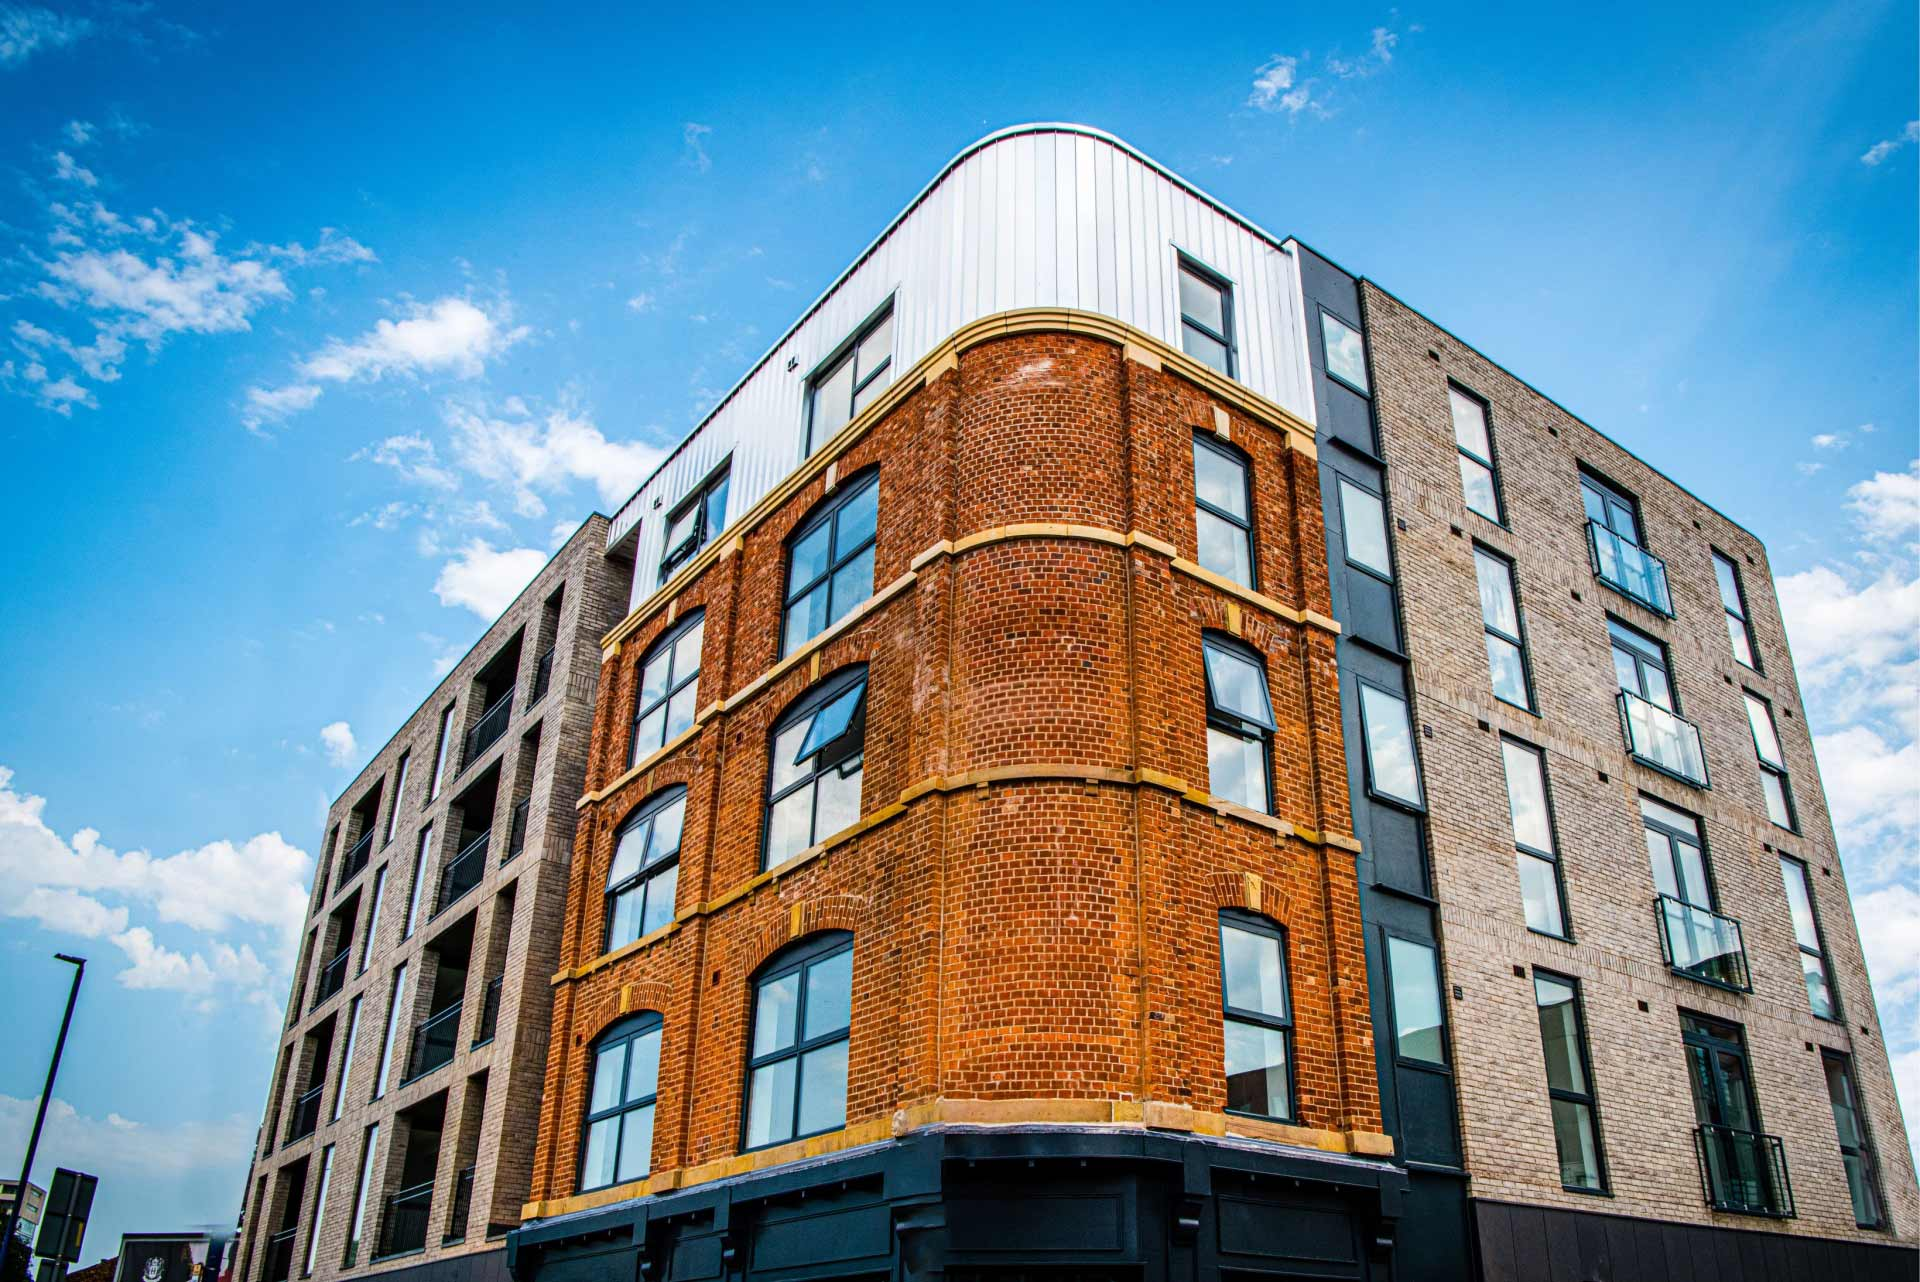 A modern building in the UK with aluminium windows